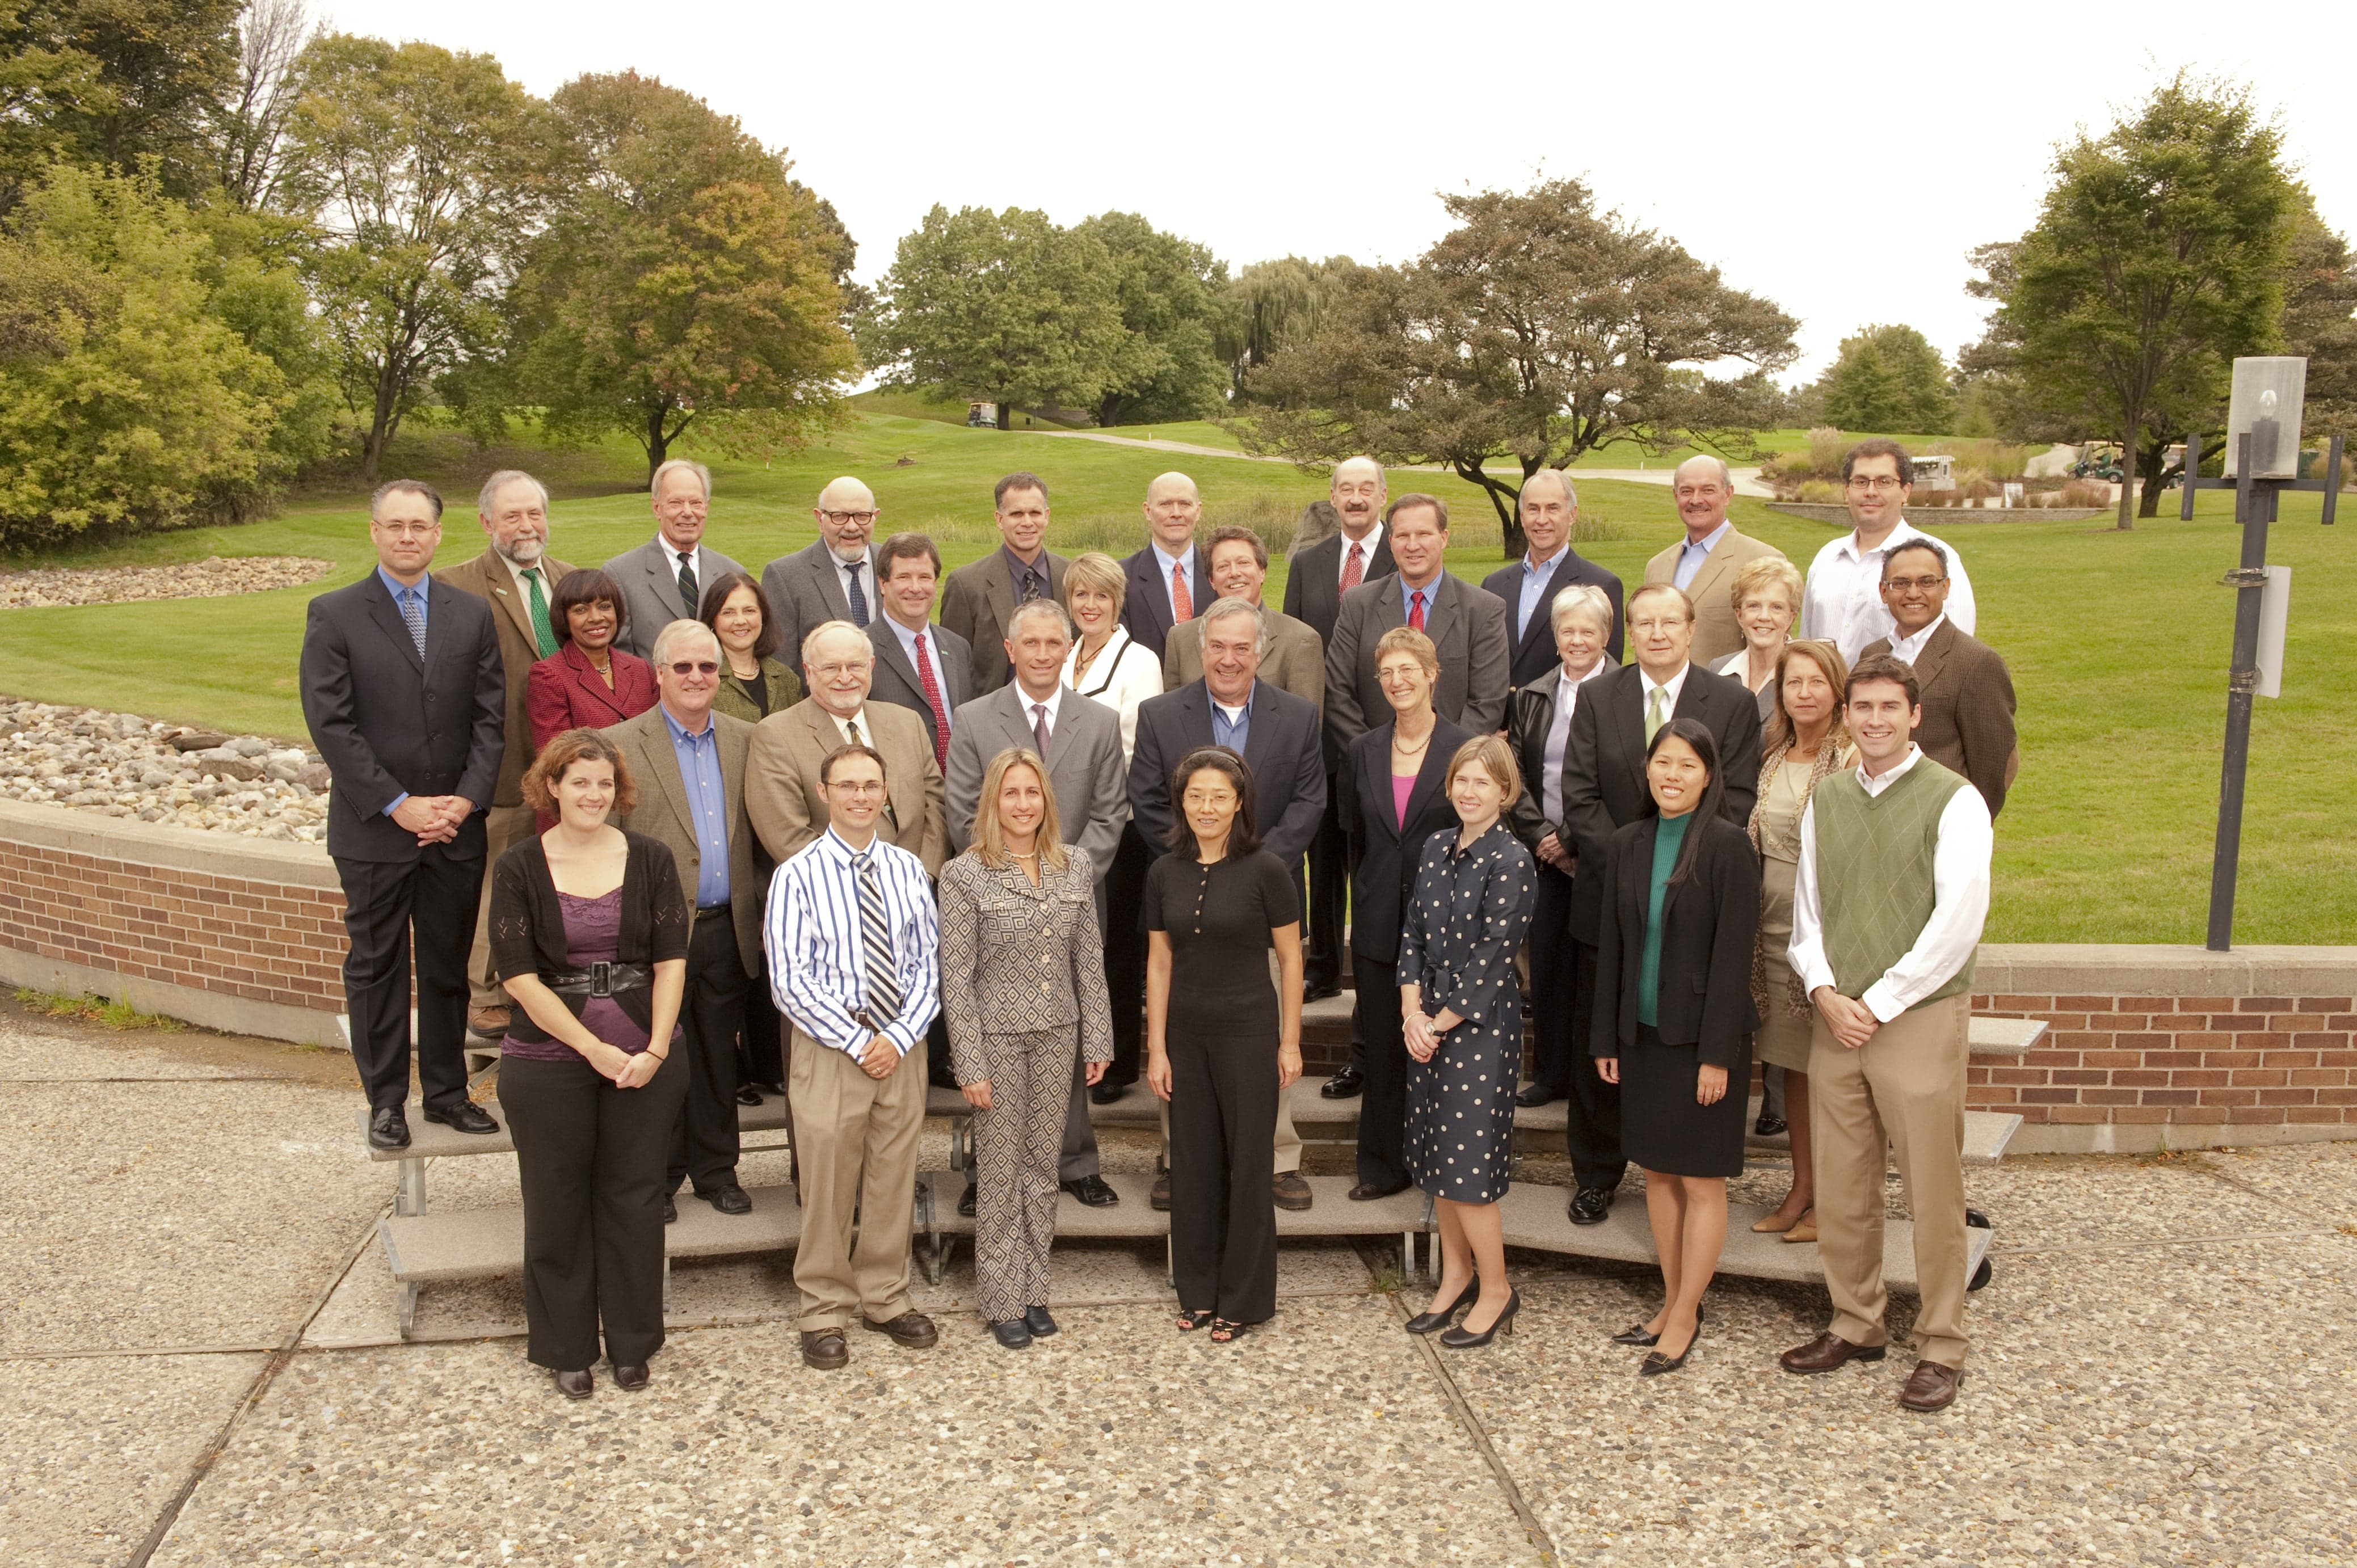 2010 Group Photo